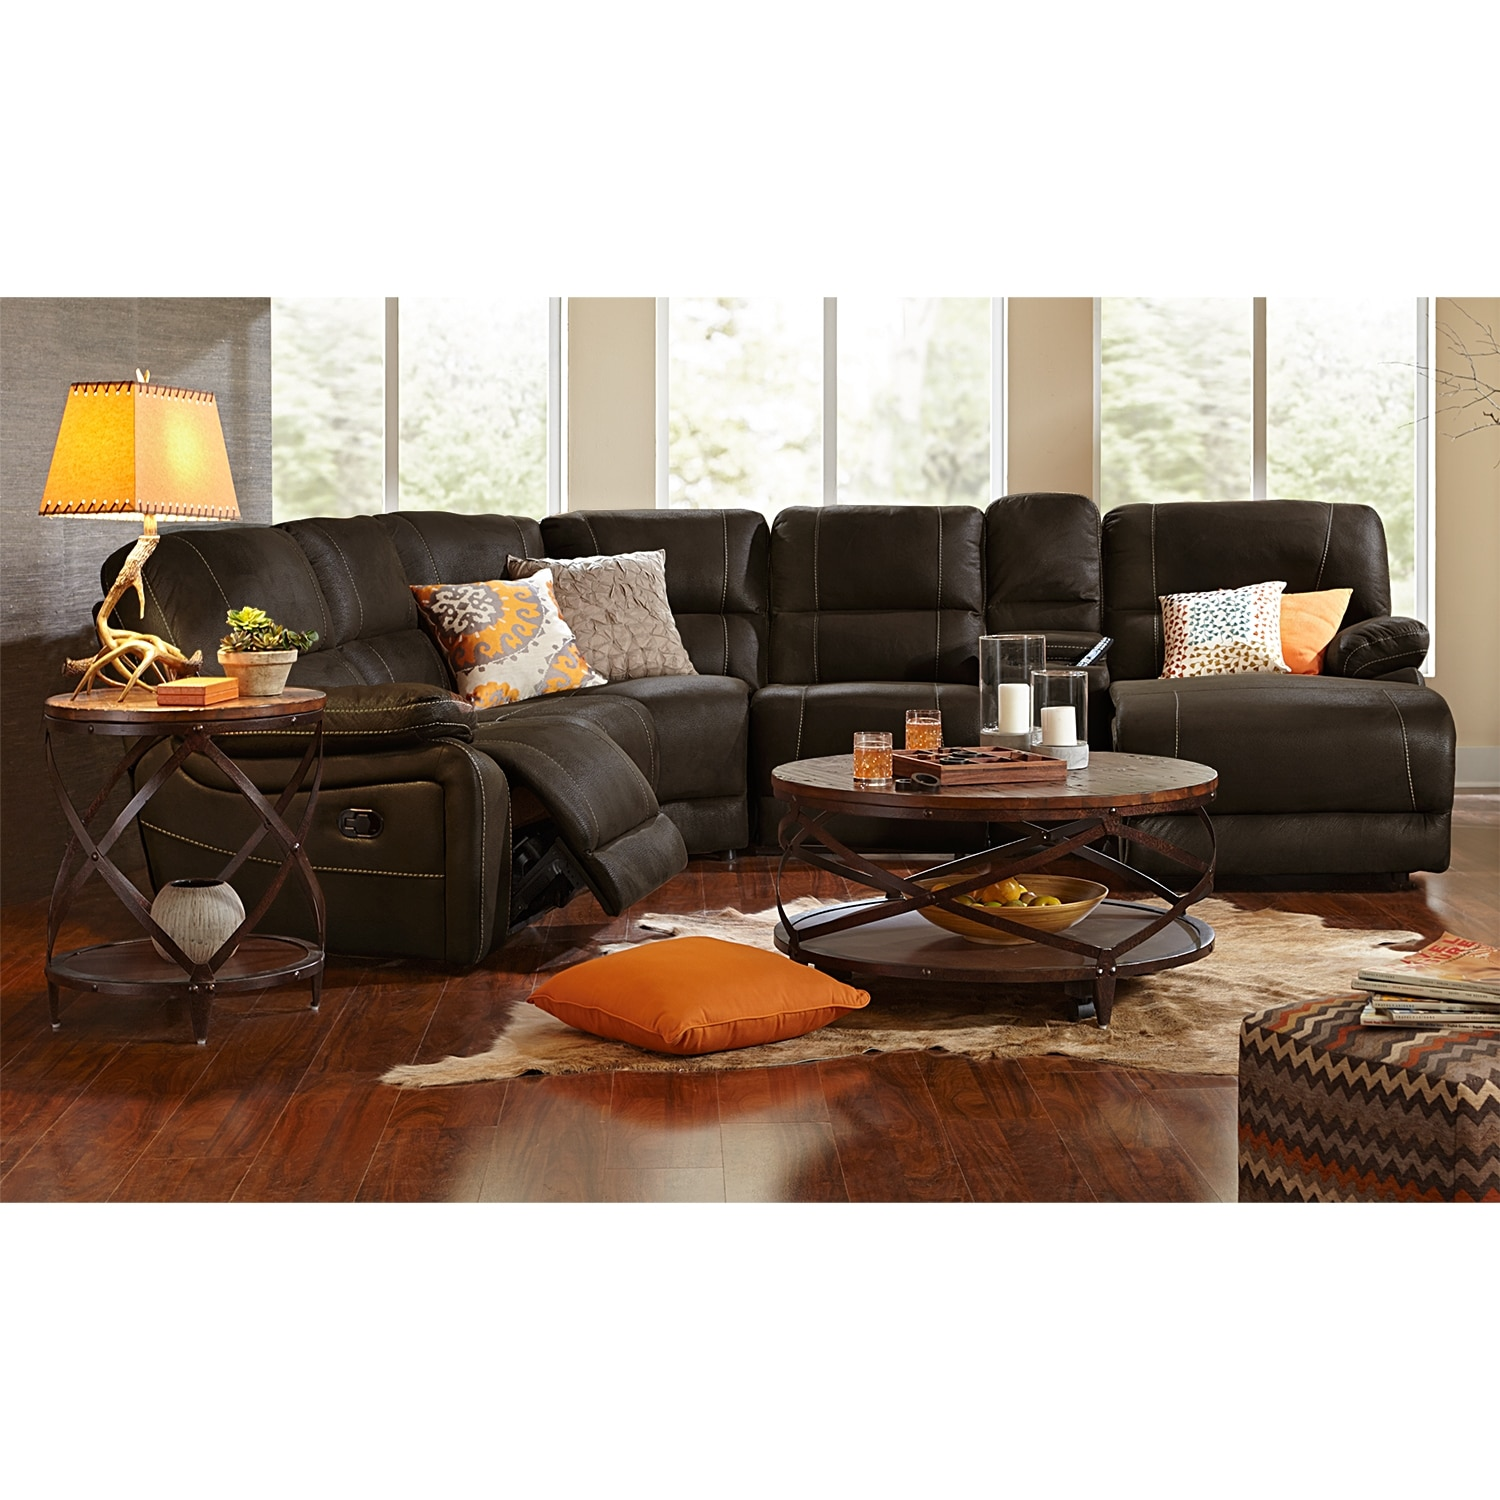 Best Value Furniture Store: Wyoming 5-Piece Reclining Sectional With Right-Facing